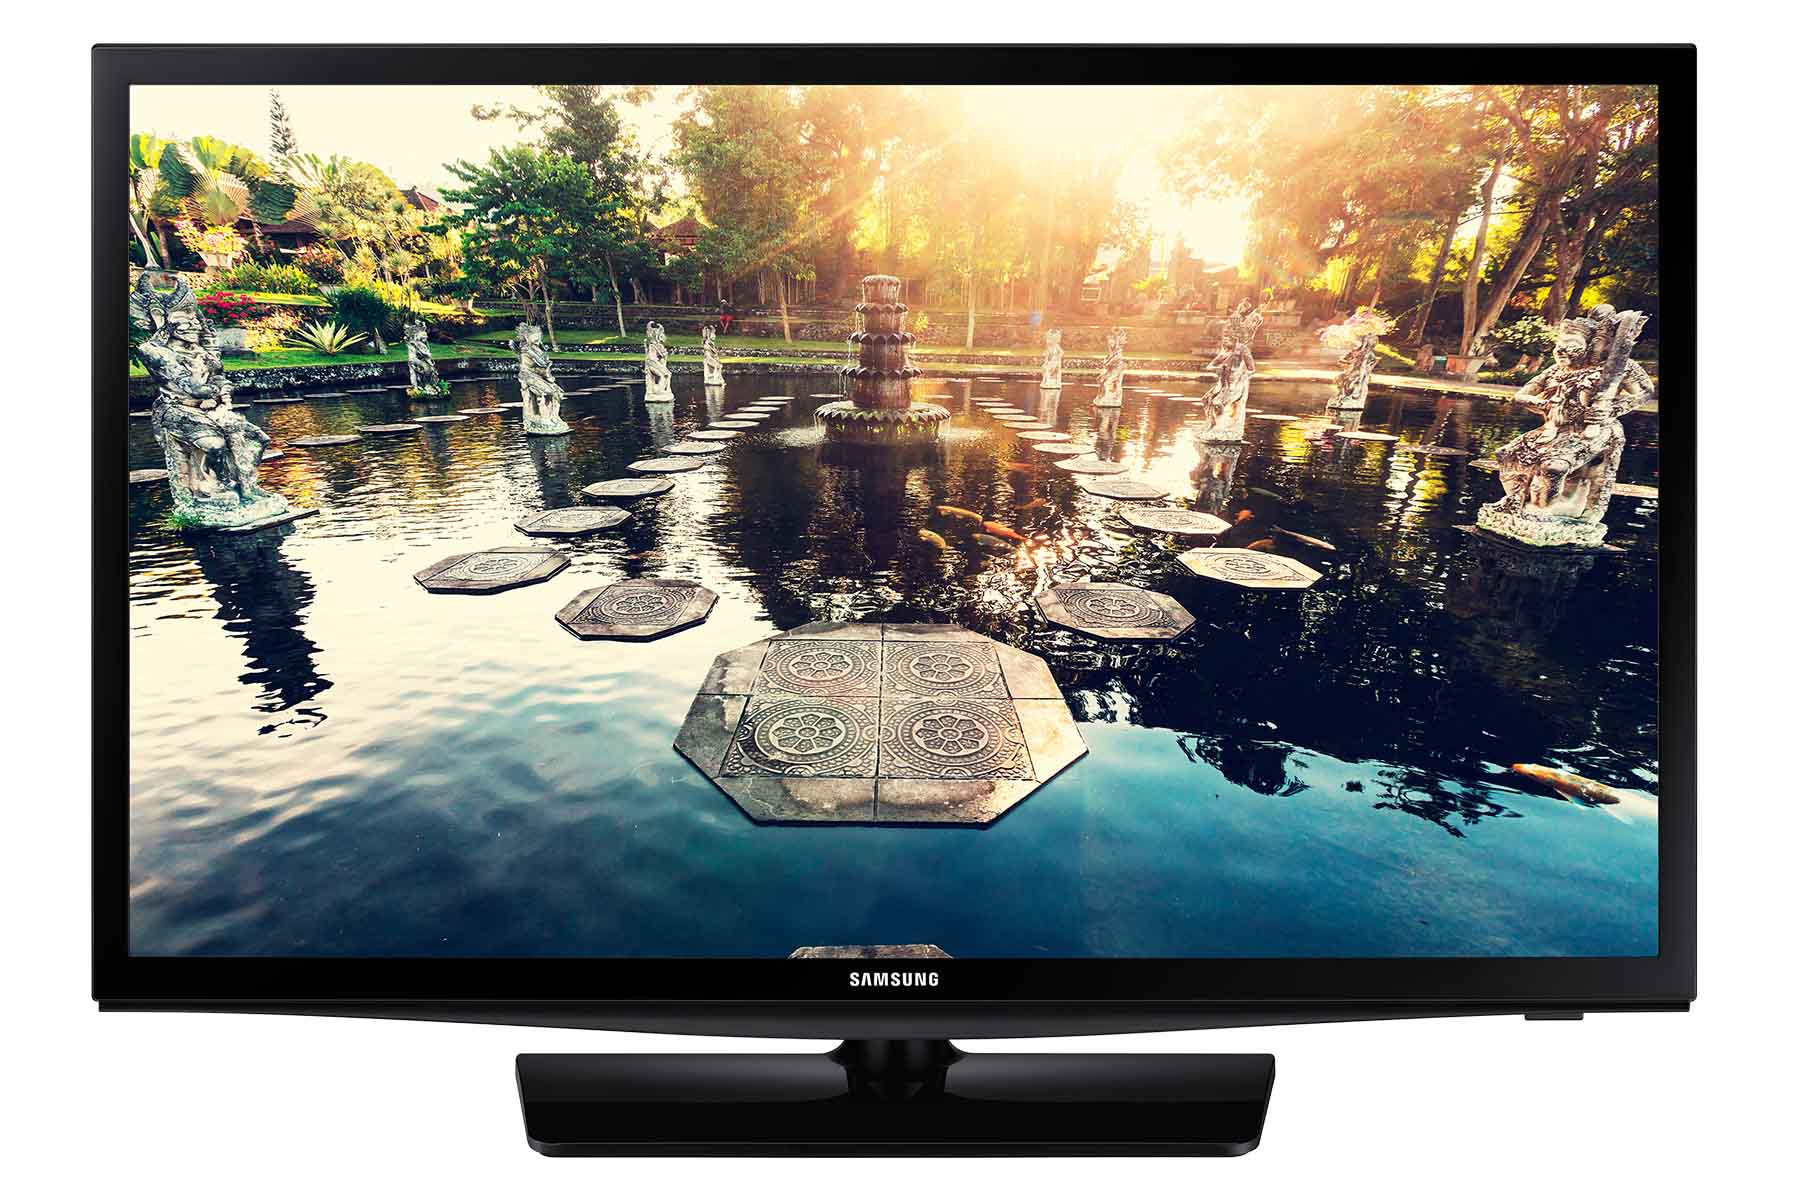 24'' LED-TV Samsung 24HE690 HTV